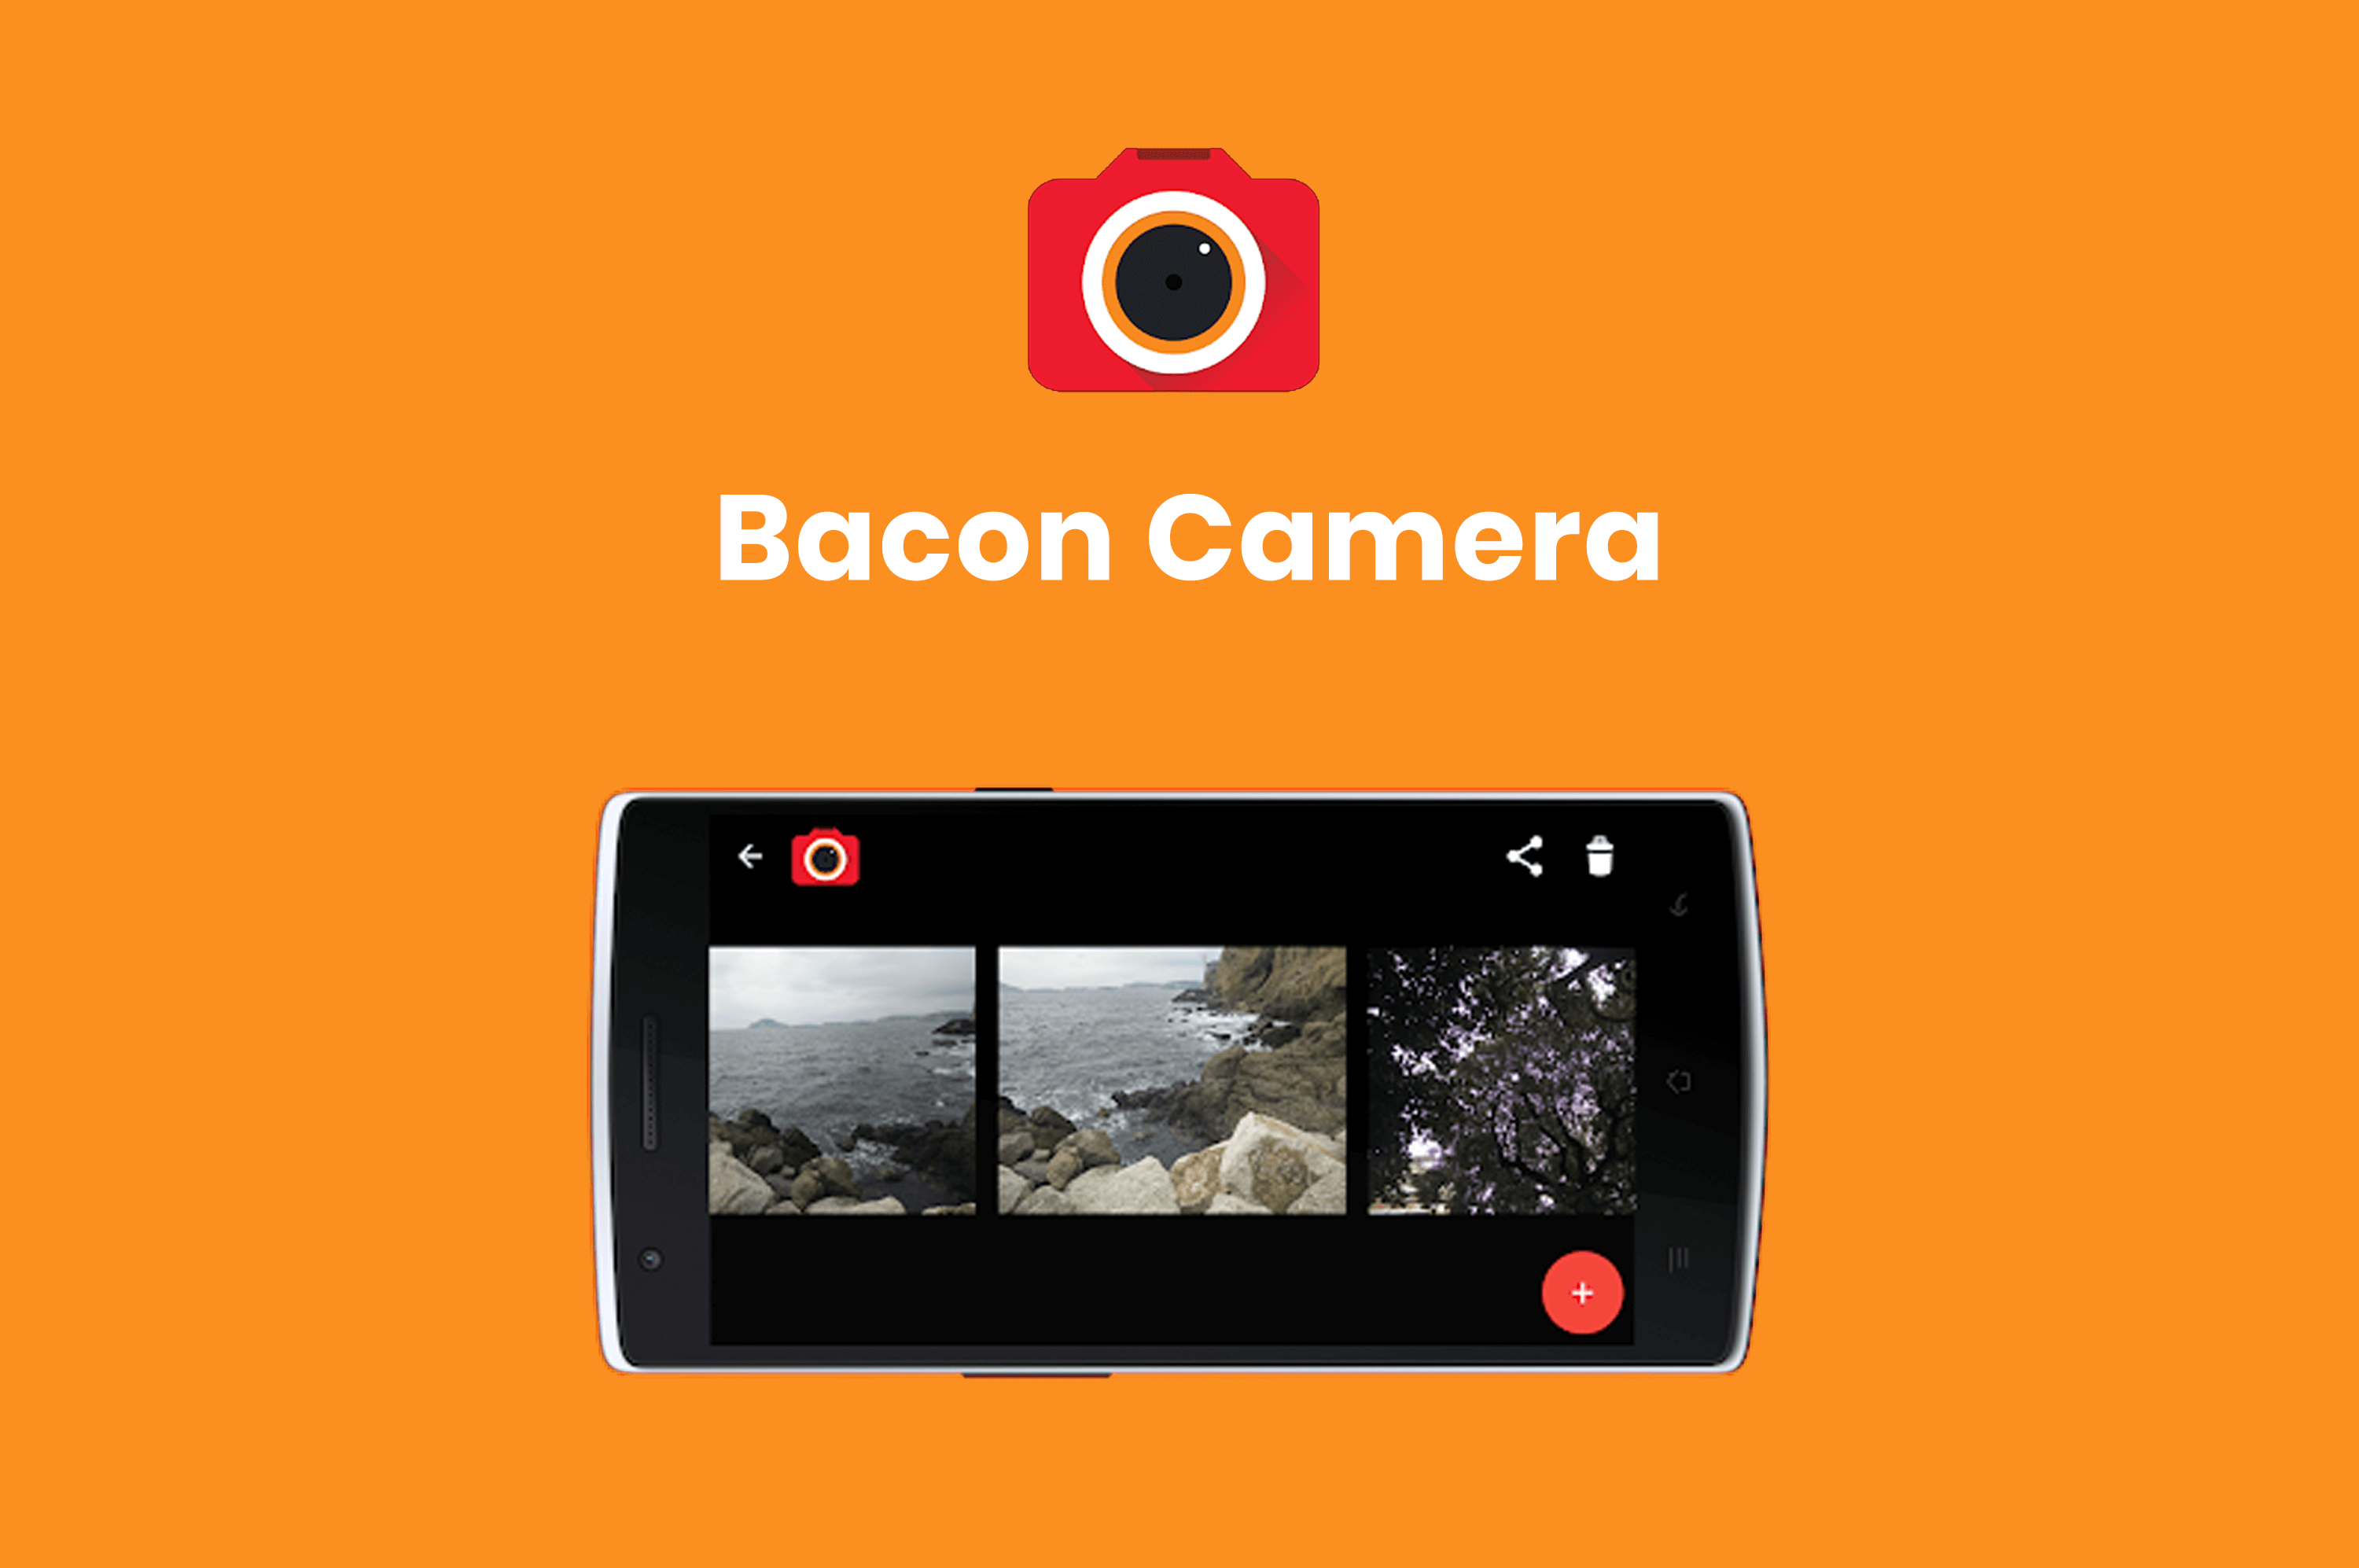 a smartphone with bacon camera  app